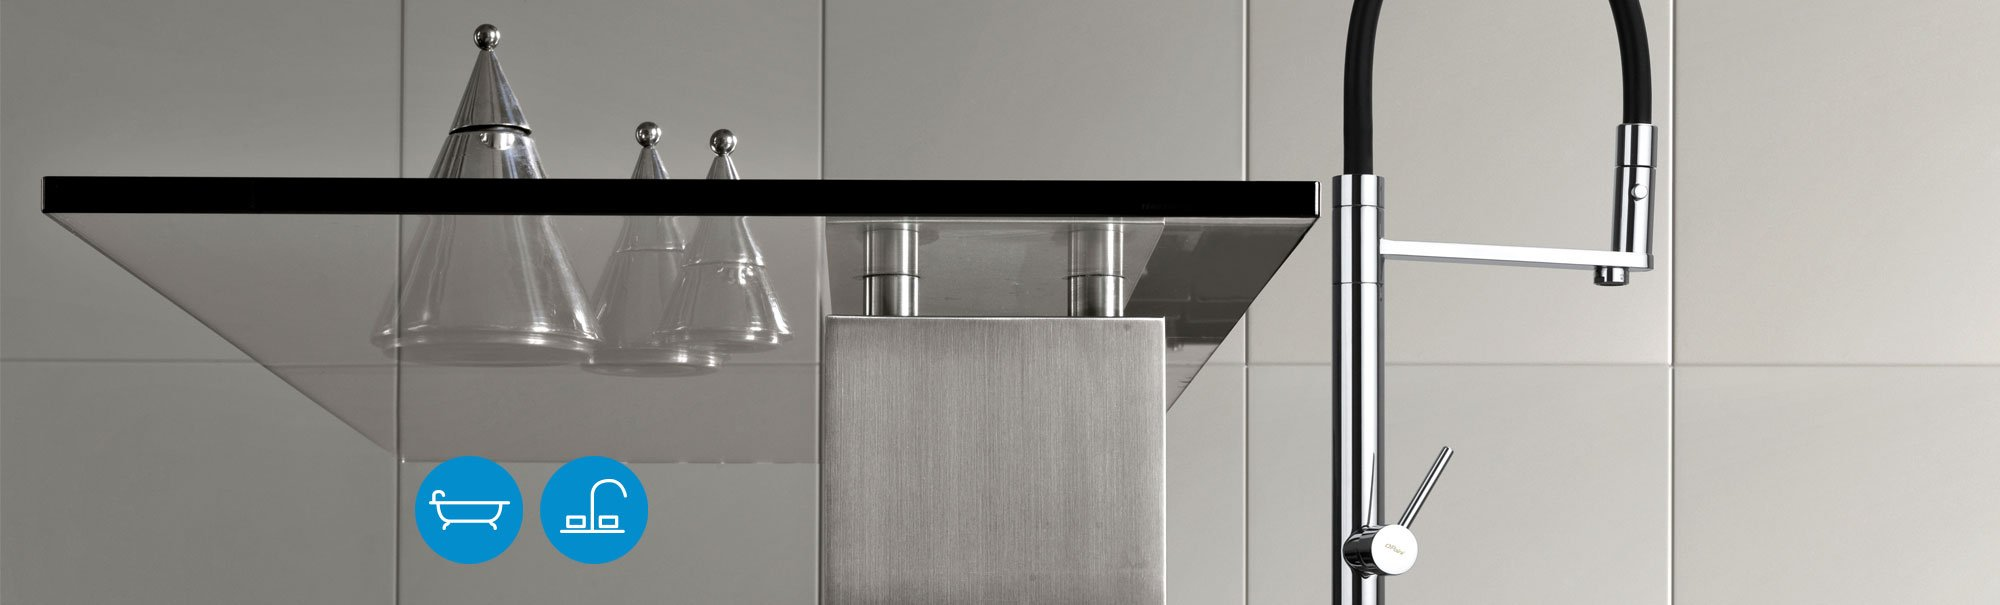 Bathroom Inspiration for Sinks and Faucets